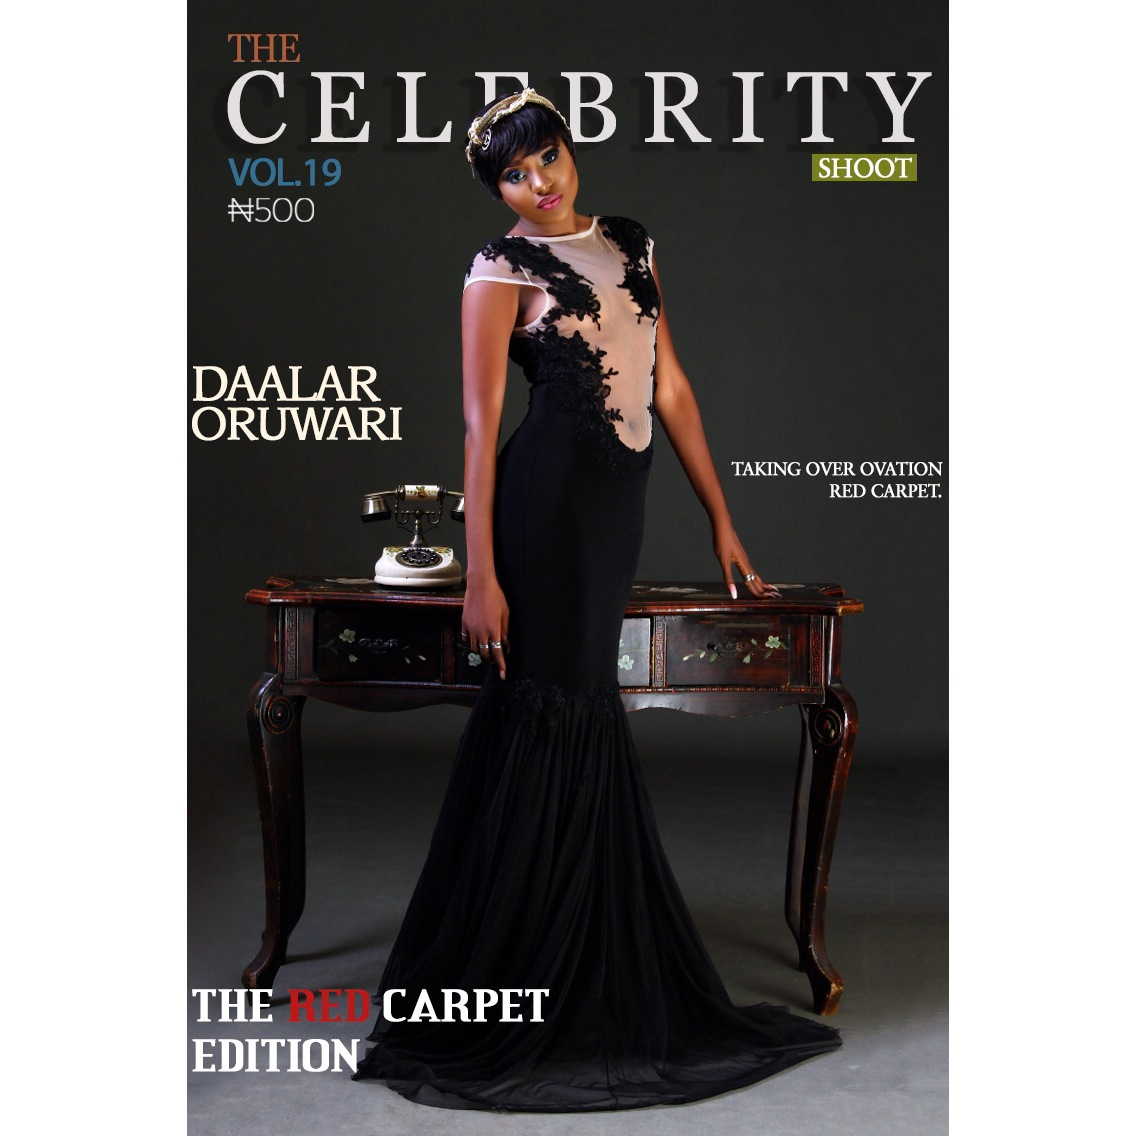 Hot Shot! Ycee And Daalar Oruwari Cover The Latest Edition Of Celebrity Shoot Magazine!